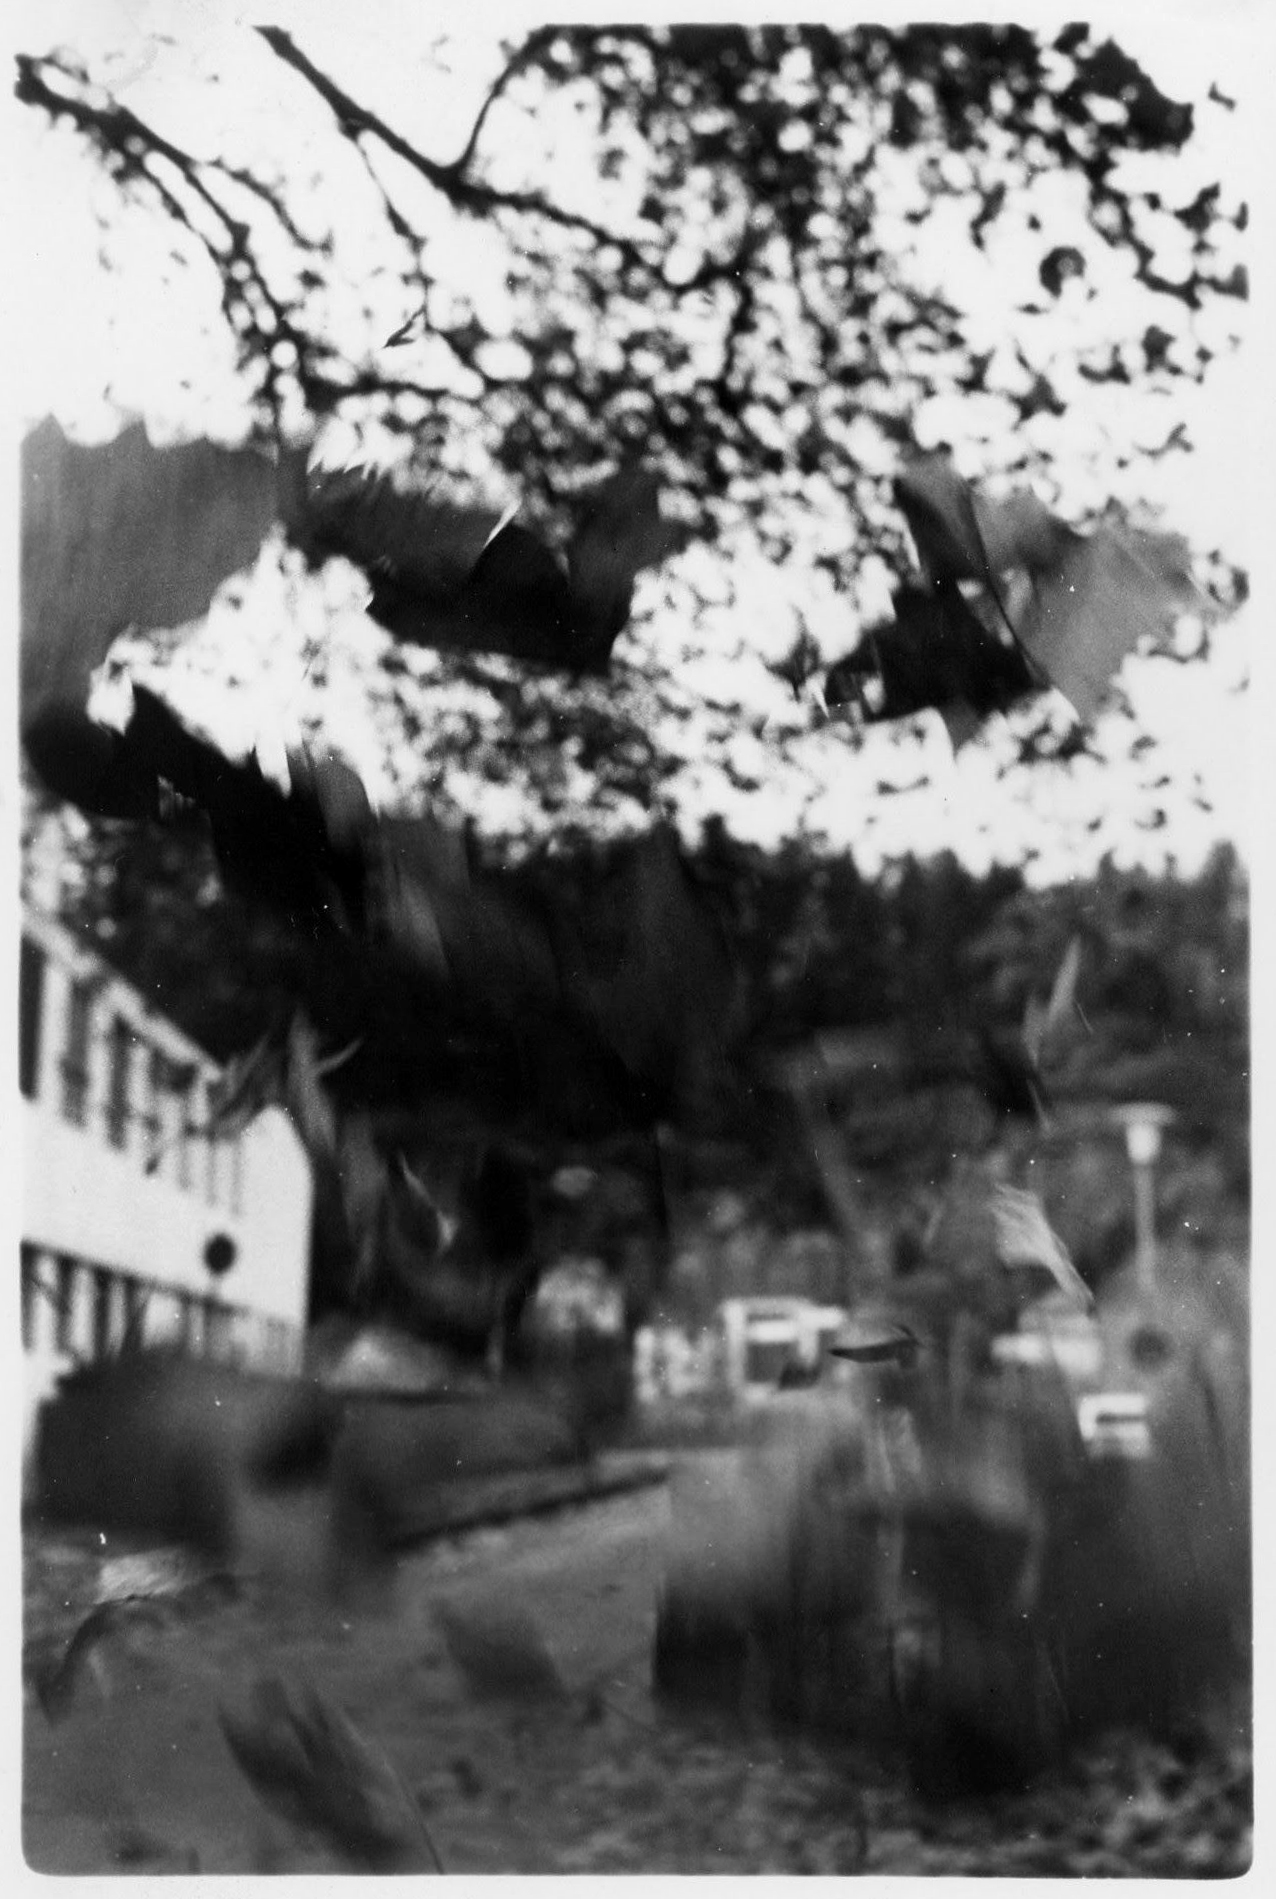 Falling leaves, motion blurred against a background of a house, a street and trees.